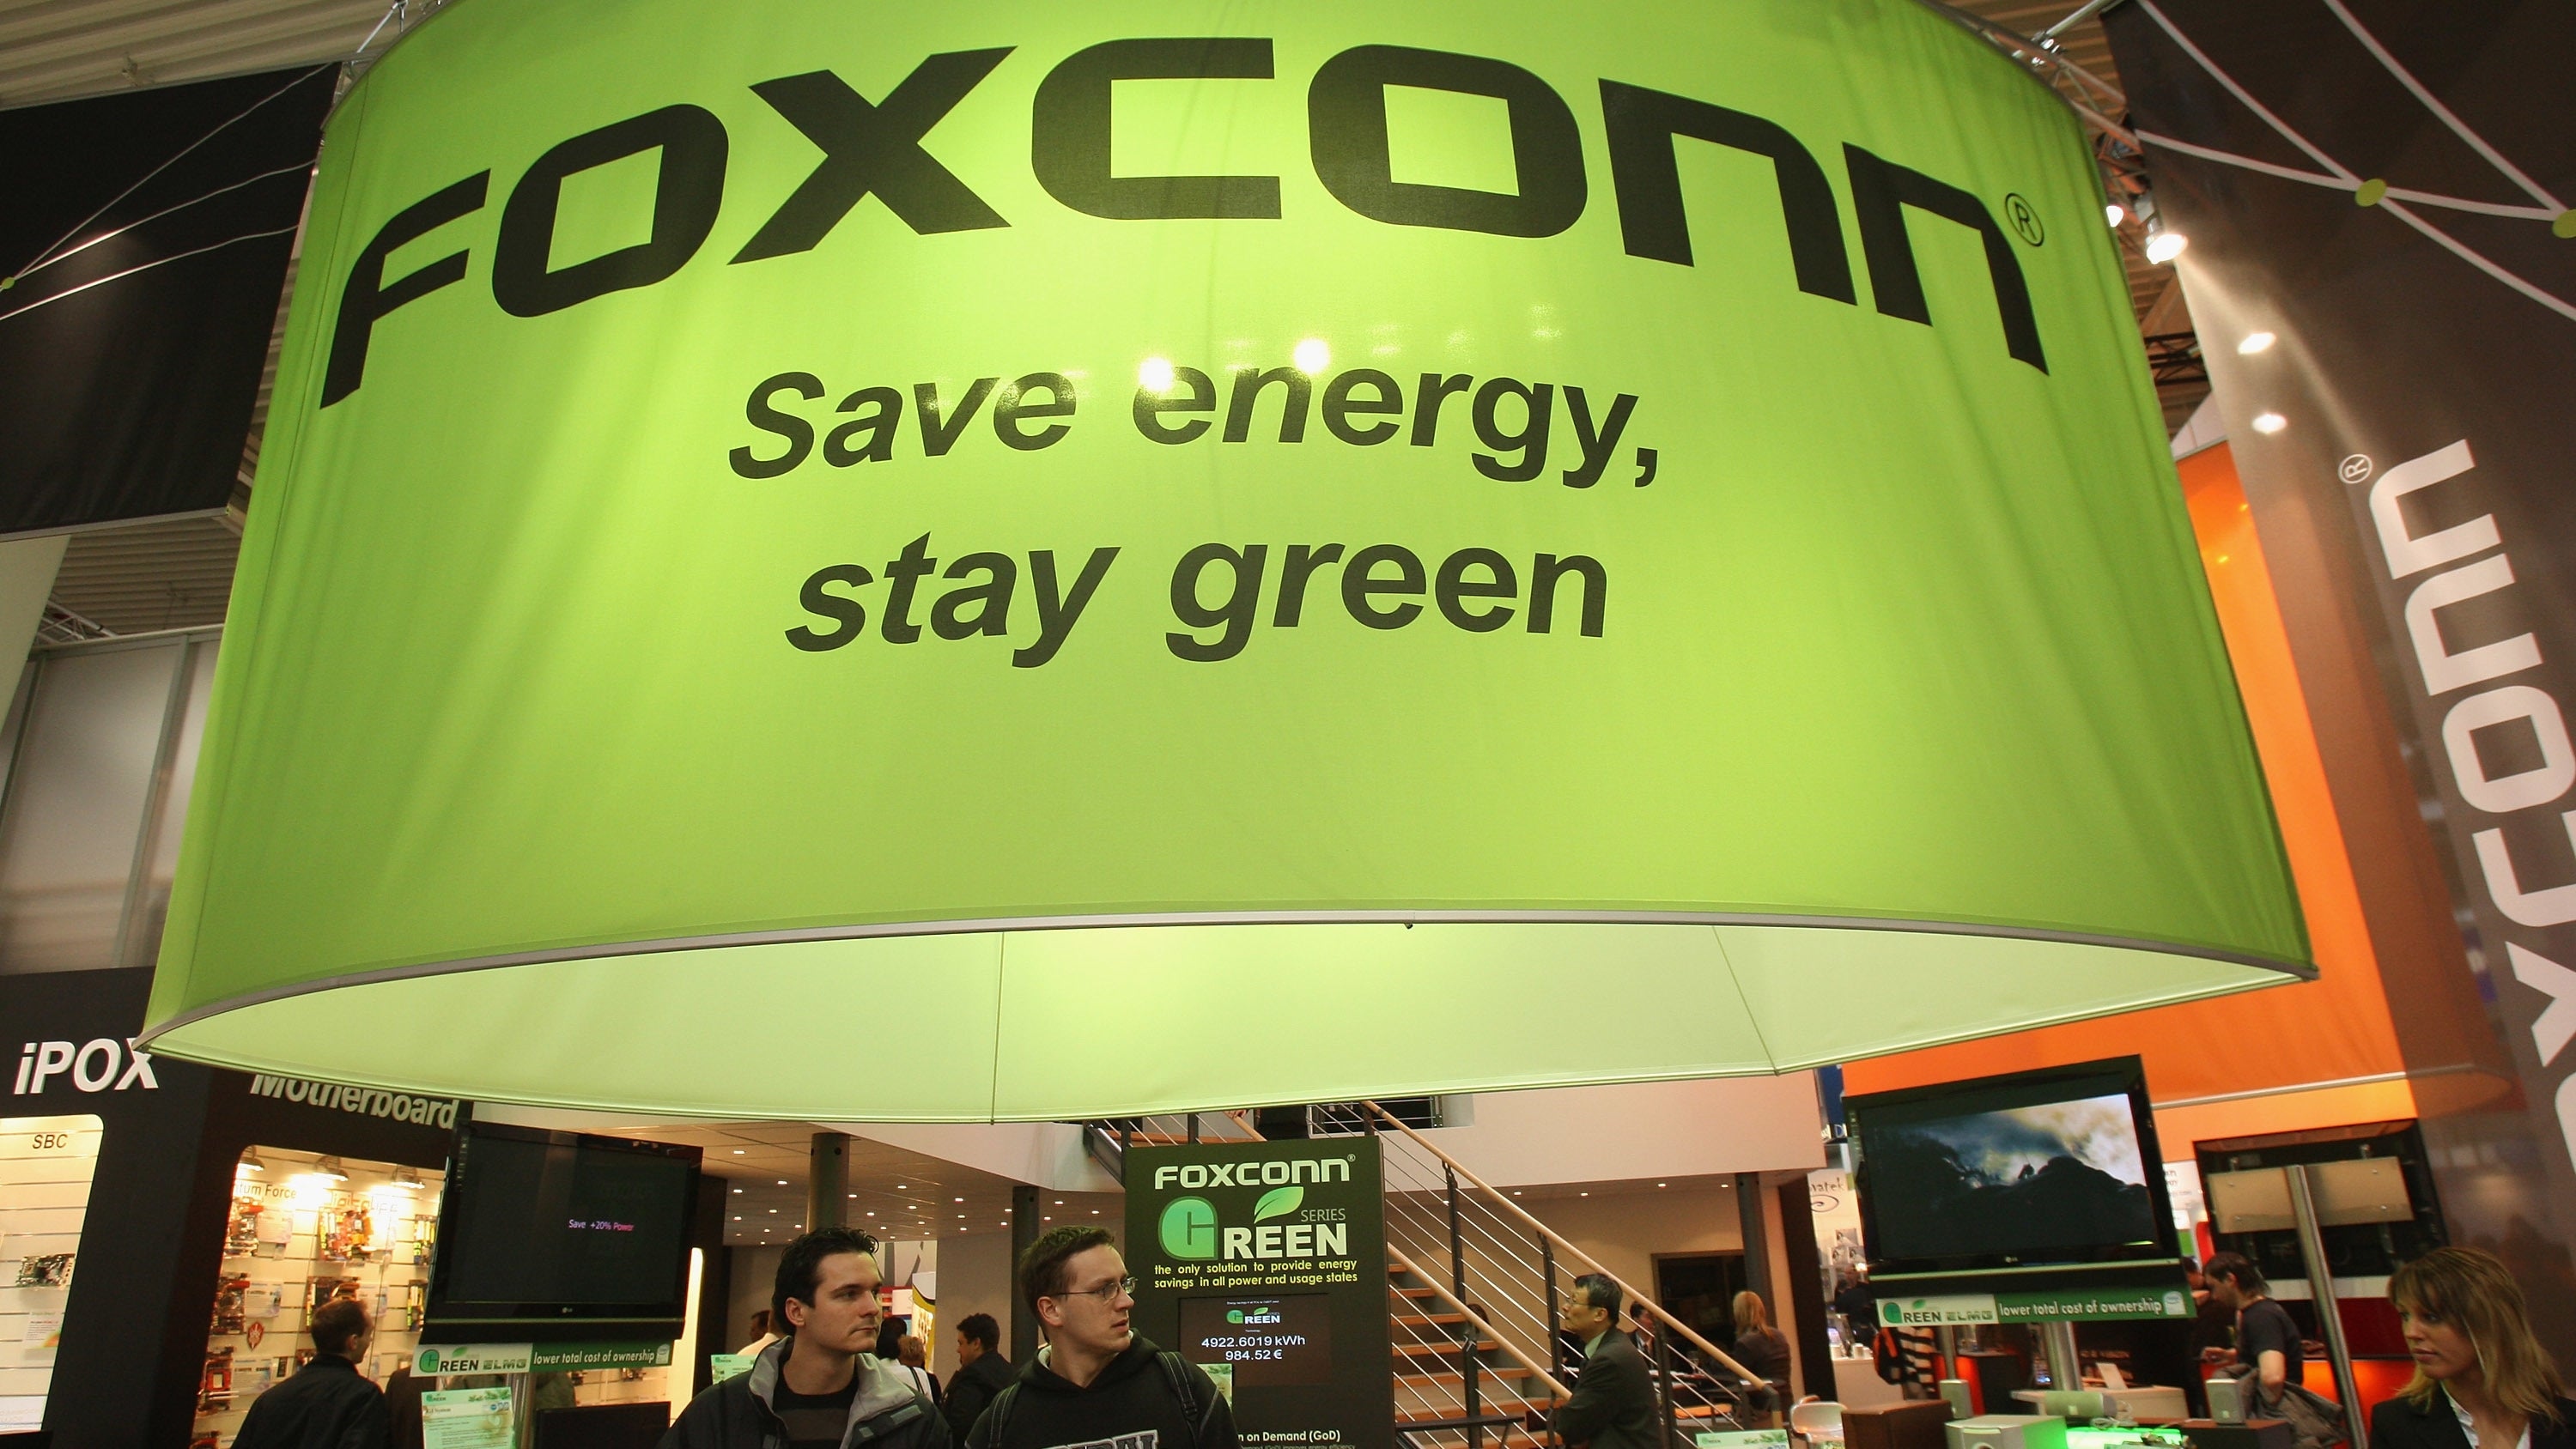 Foxconn Will Drain 26.5 Megalitres Of Water Per Day From Lake Michigan To Make LCD Screens